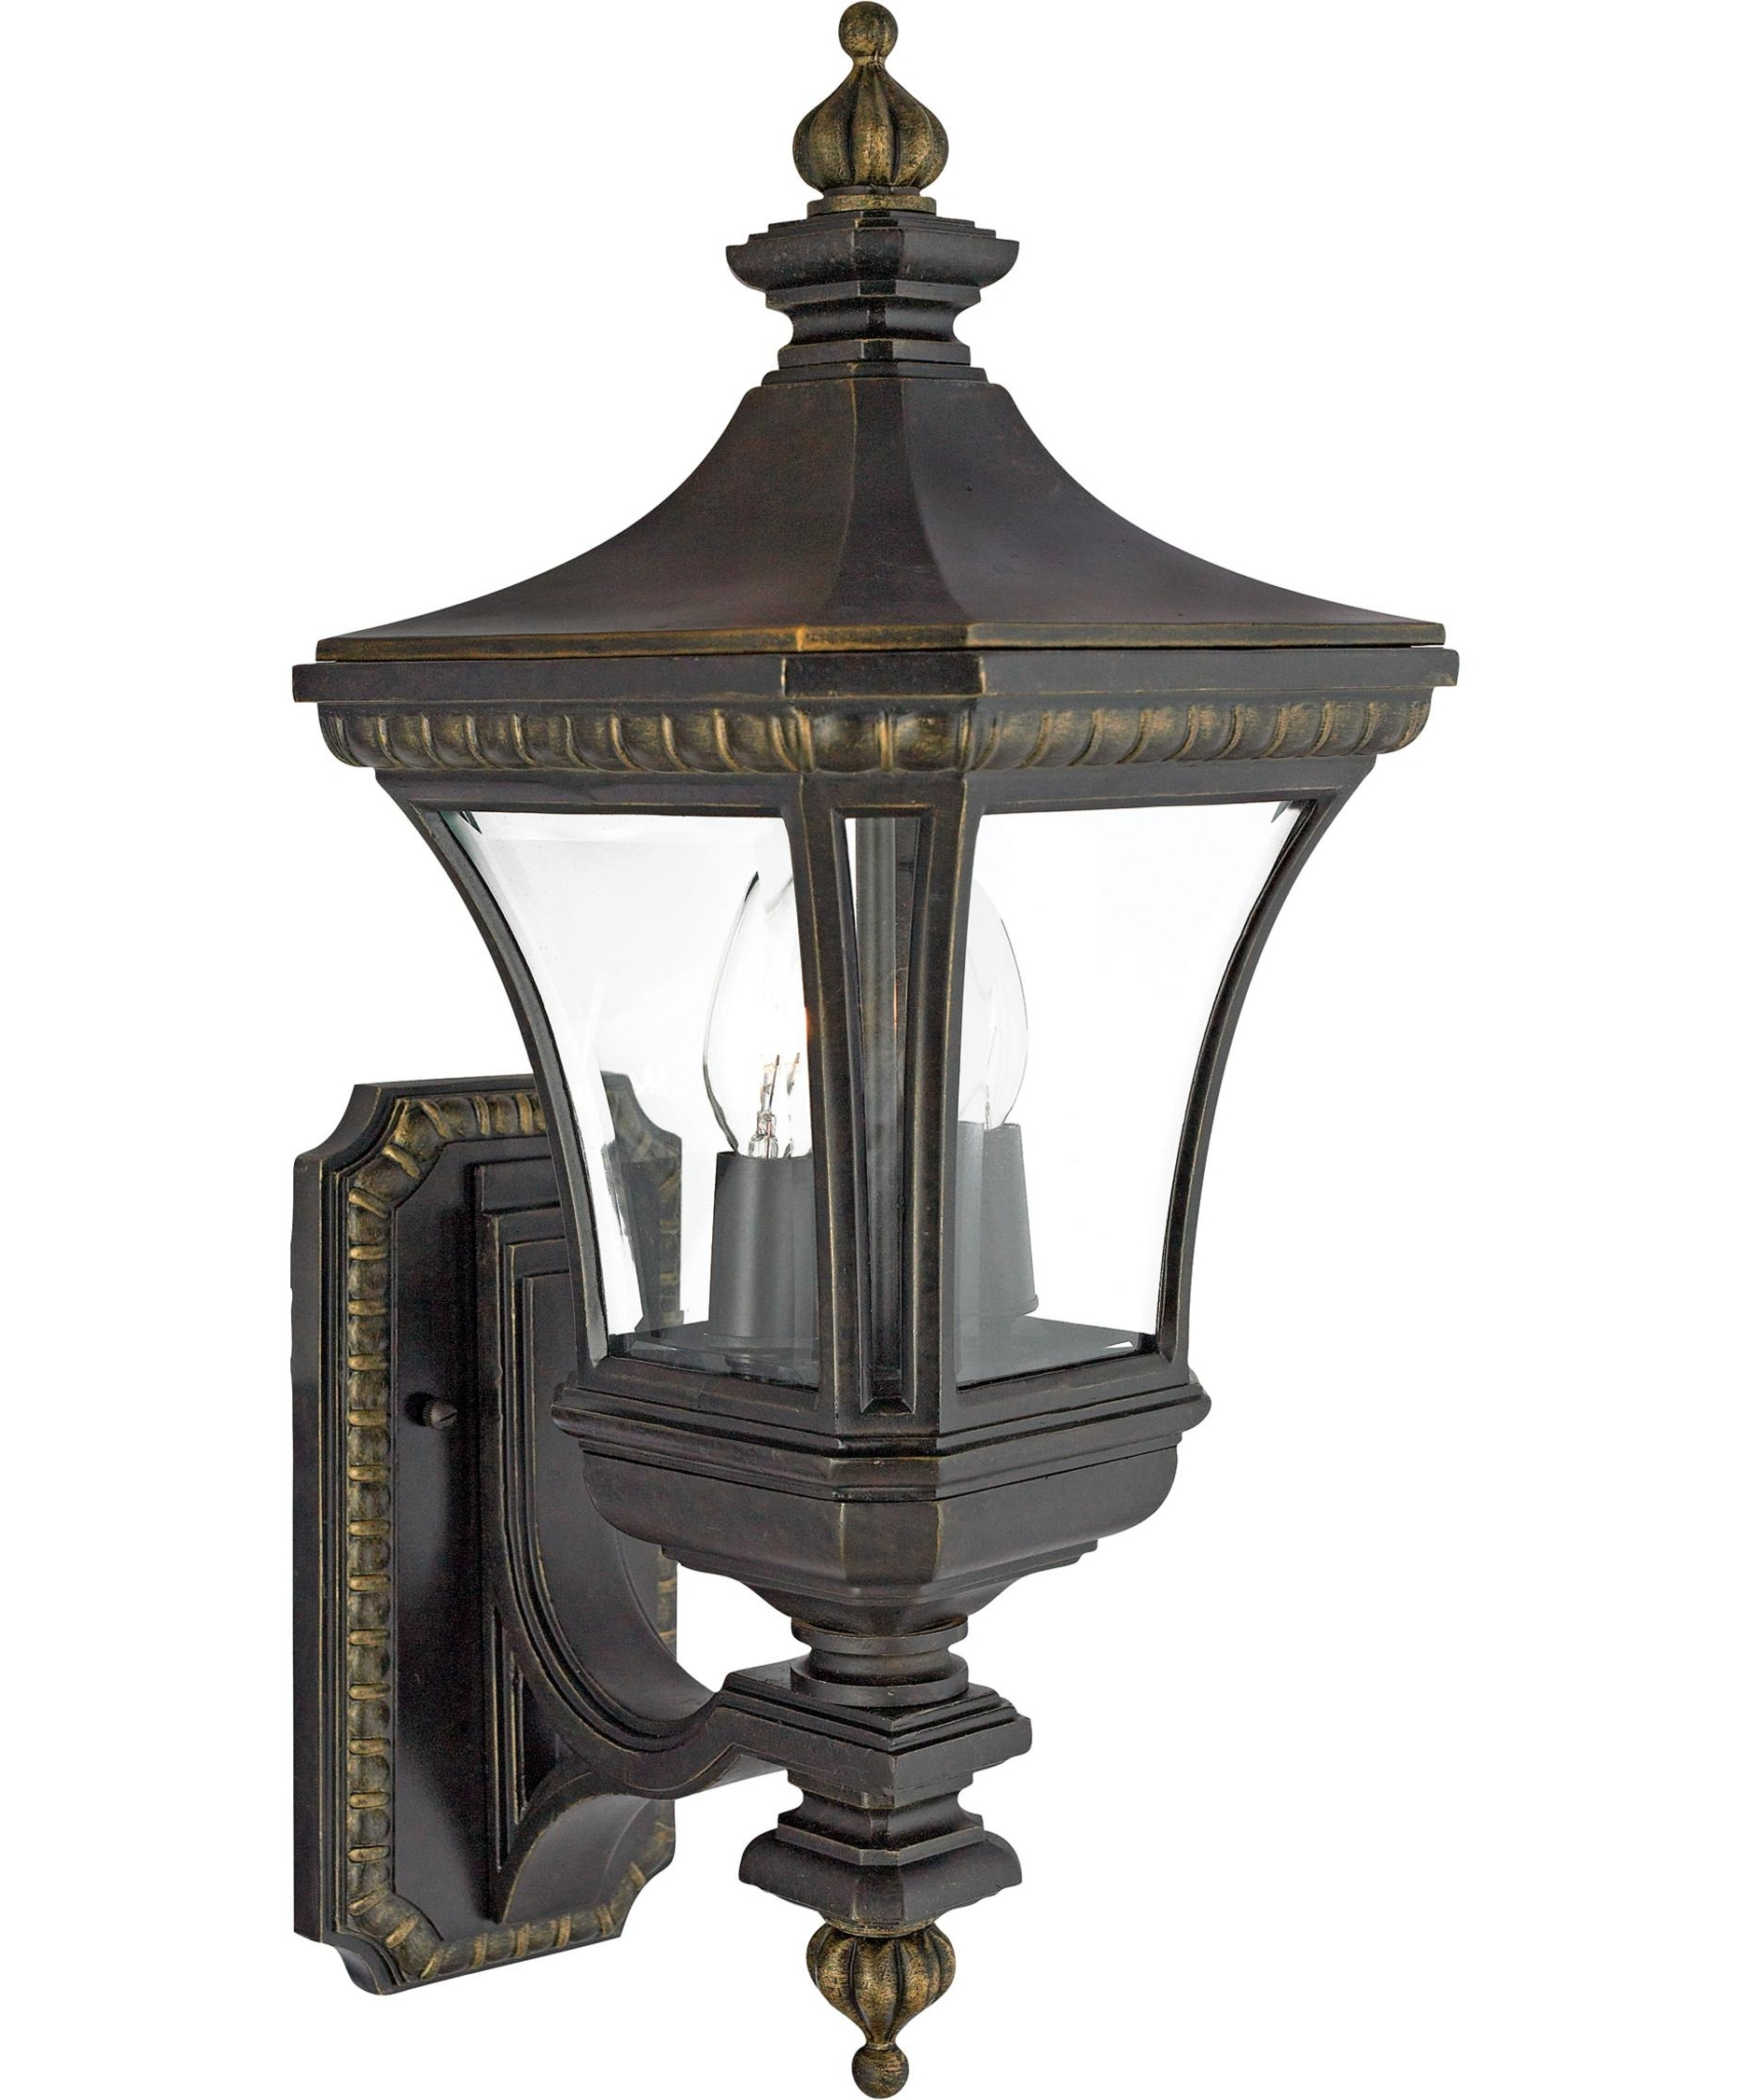 Popular Victorian Outdoor Lighting Luxury Ava Bathroom Pendant Light Fluted Intended For Victorian Outdoor Lanterns (View 14 of 20)